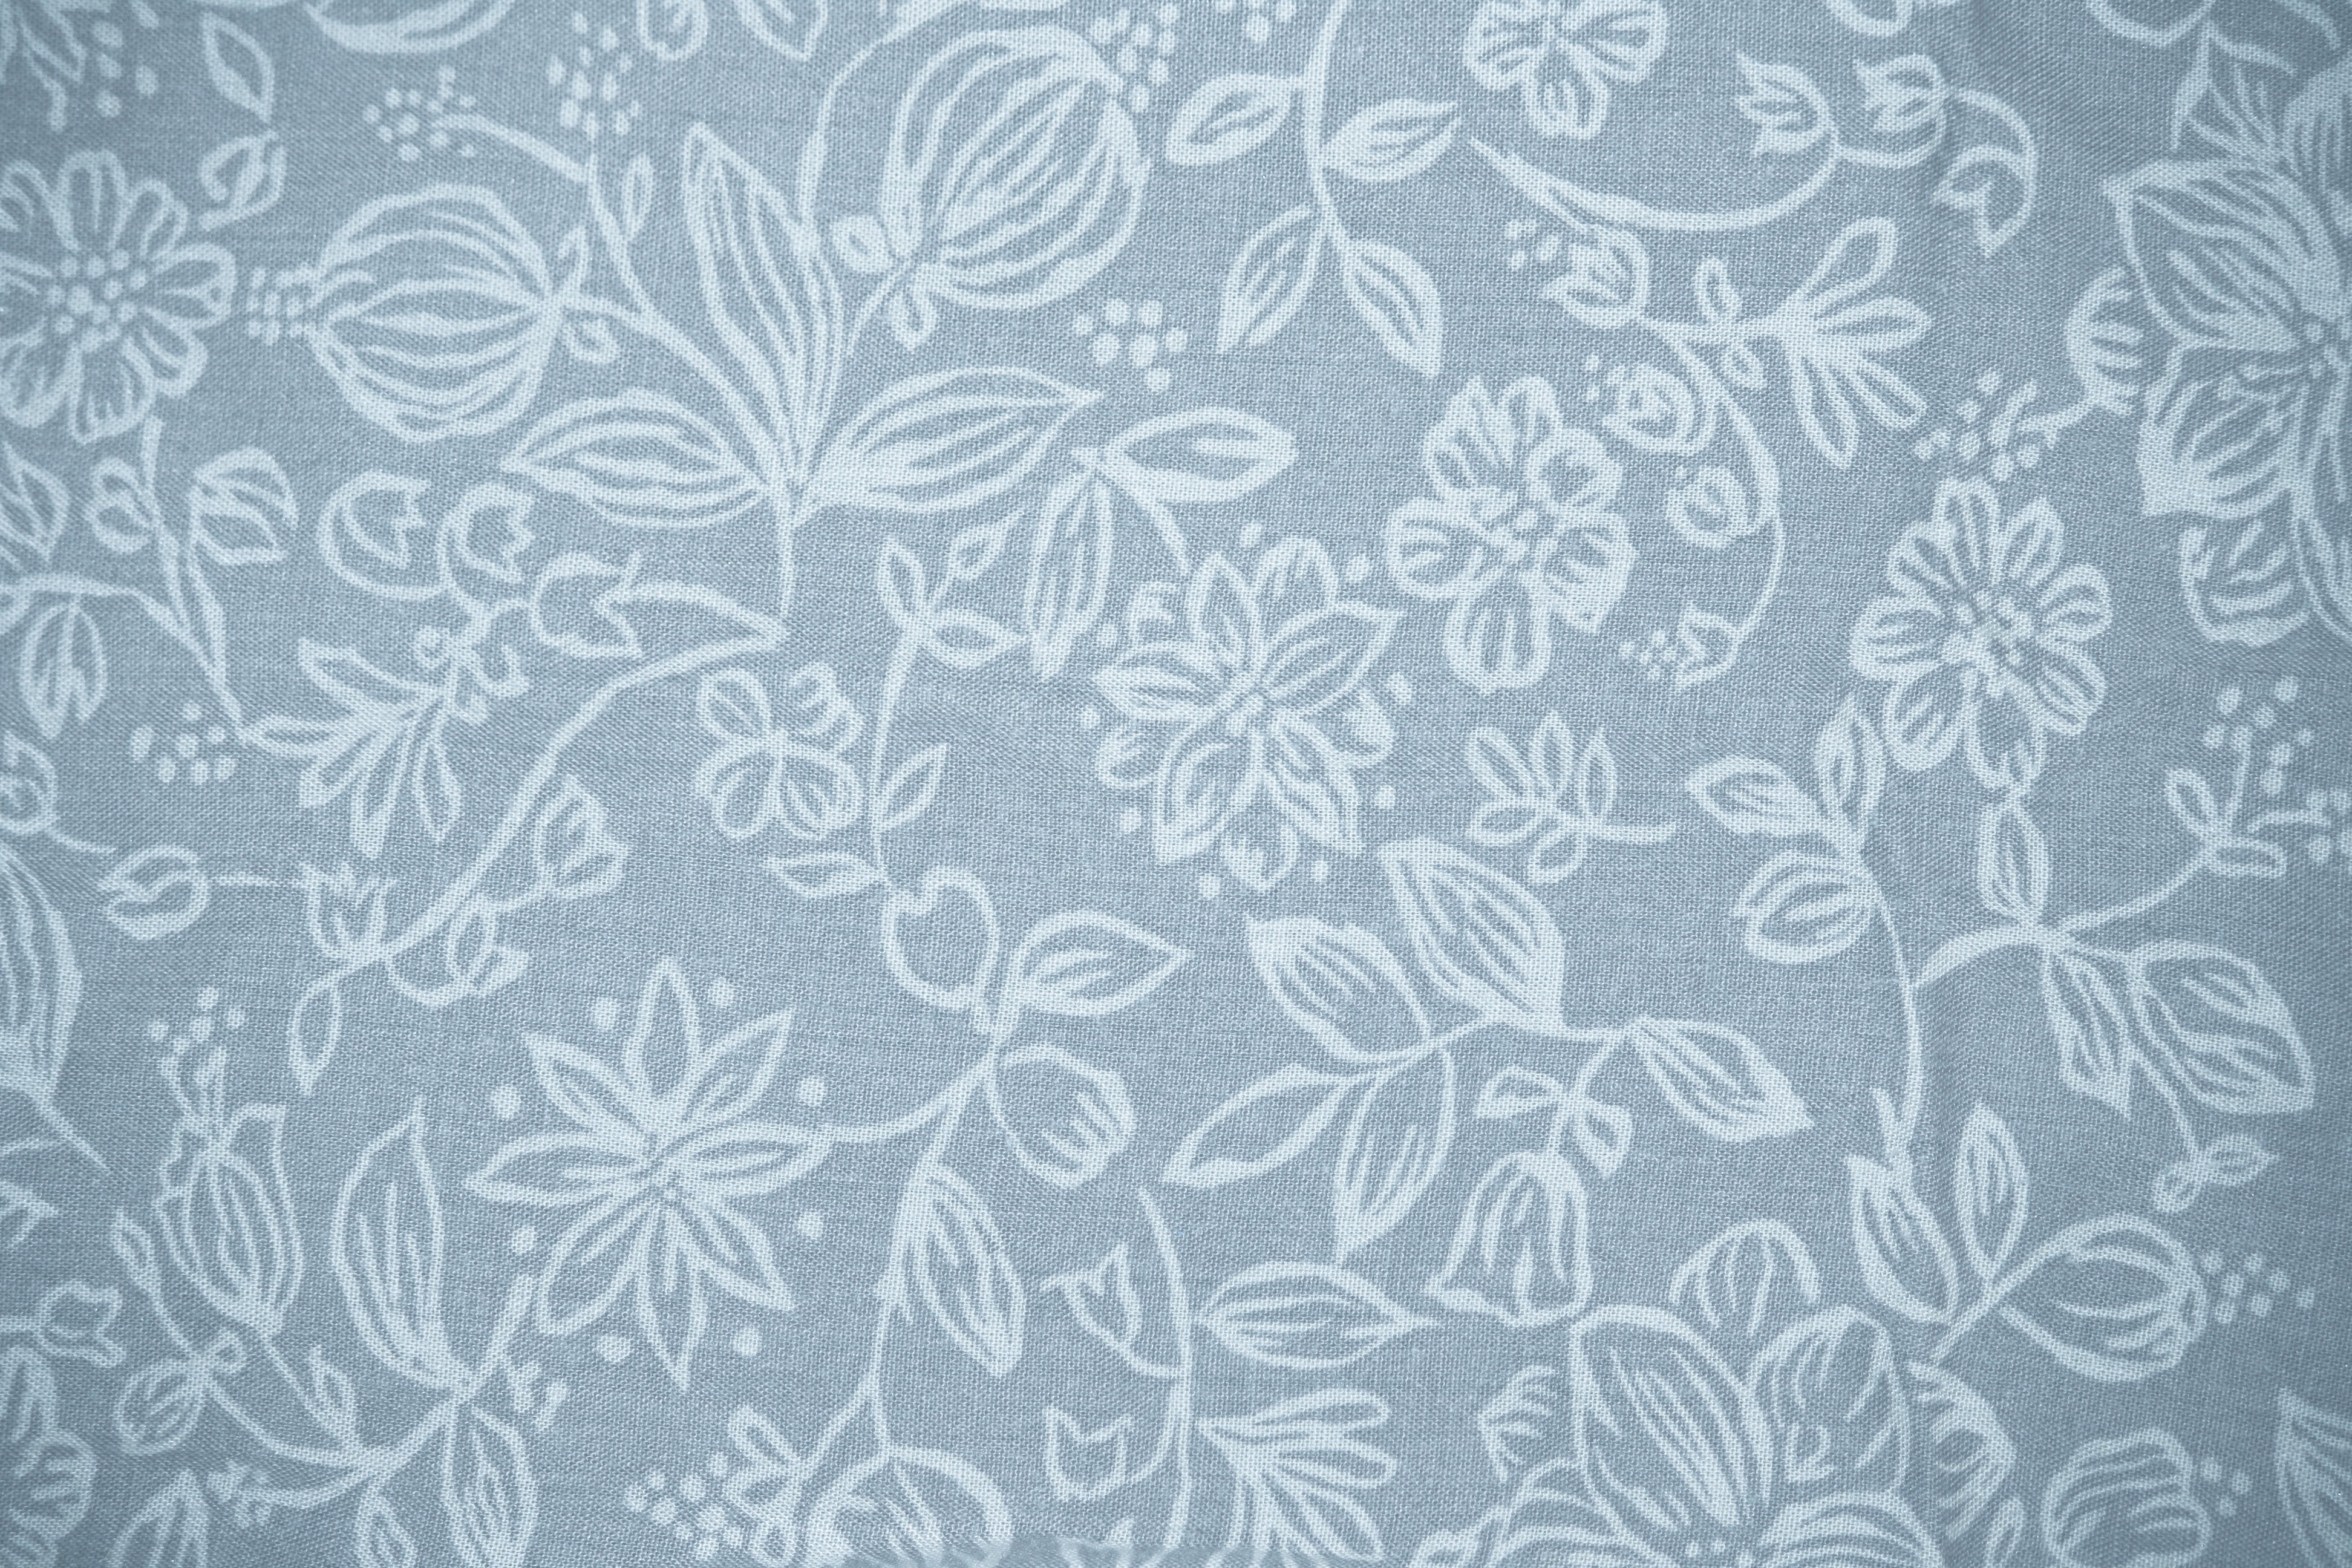 Blue Gray Fabric with Floral Pattern Texture Picture Photograph 3888x2592